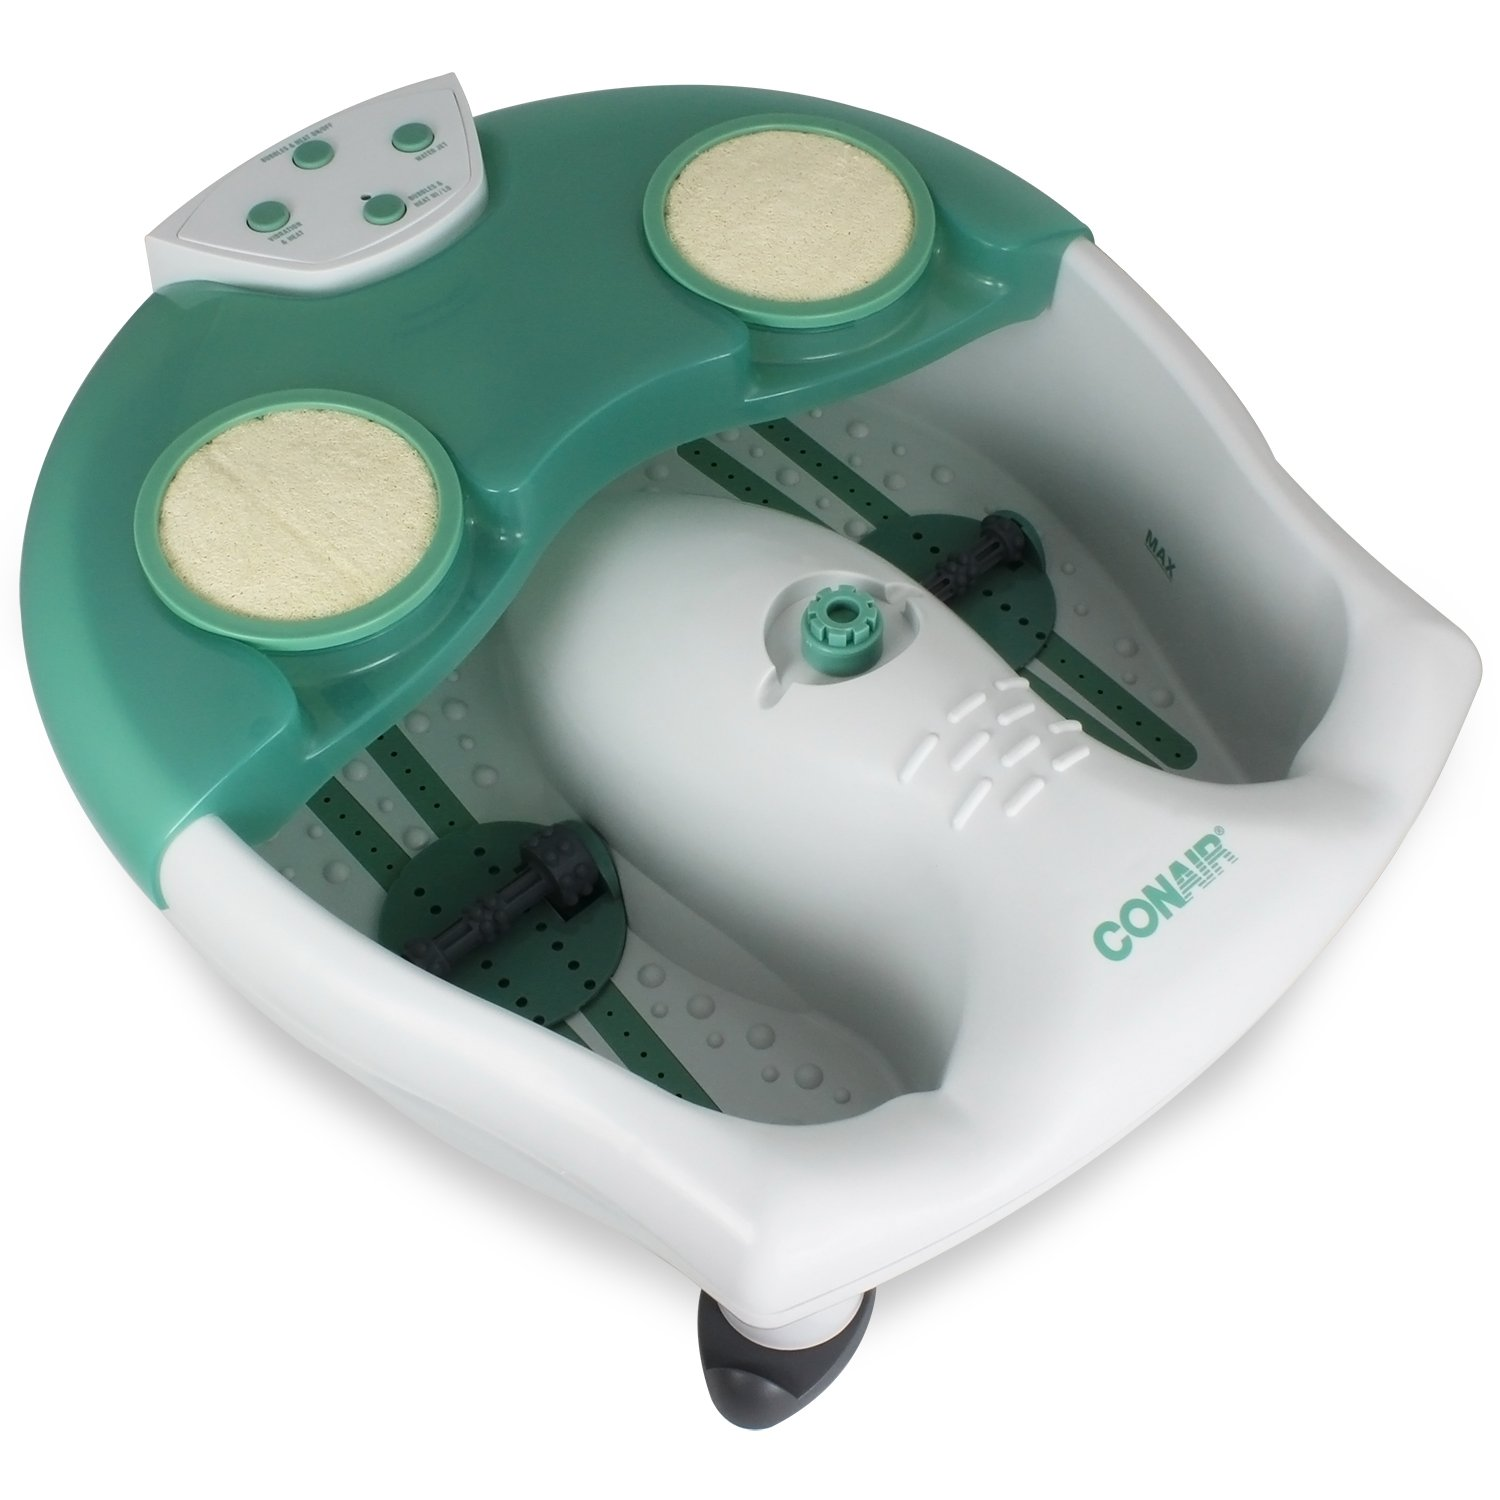 Amazon.com: Conair Ultra Massaging Foot Spa: Health & Personal Care